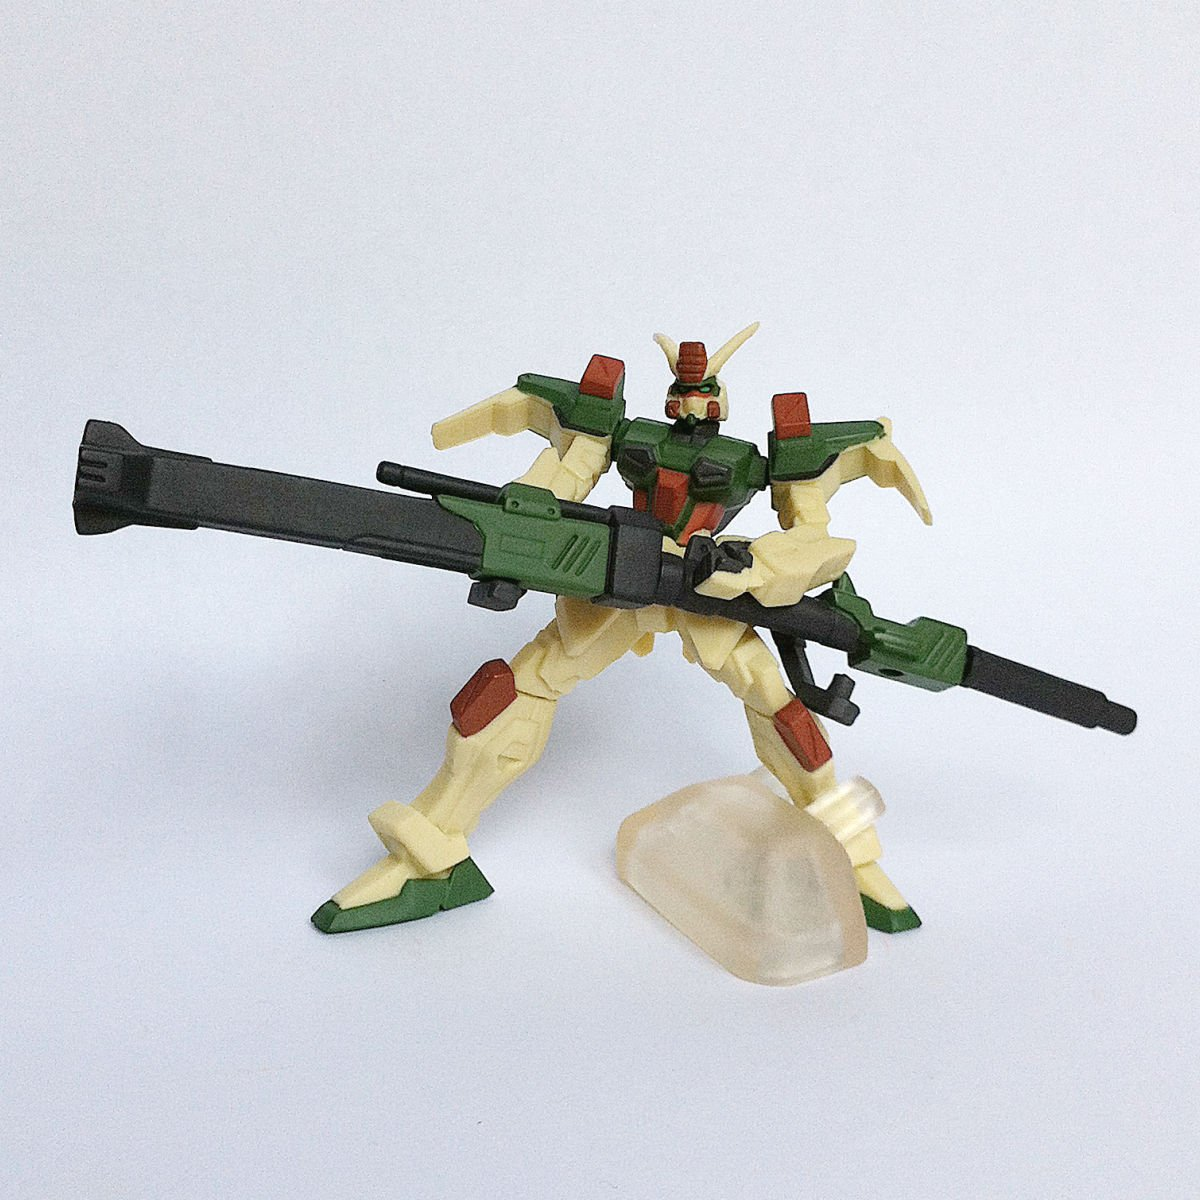 GAT-X103 Buster Gundam from HG Gundam MS Selection by Bandai